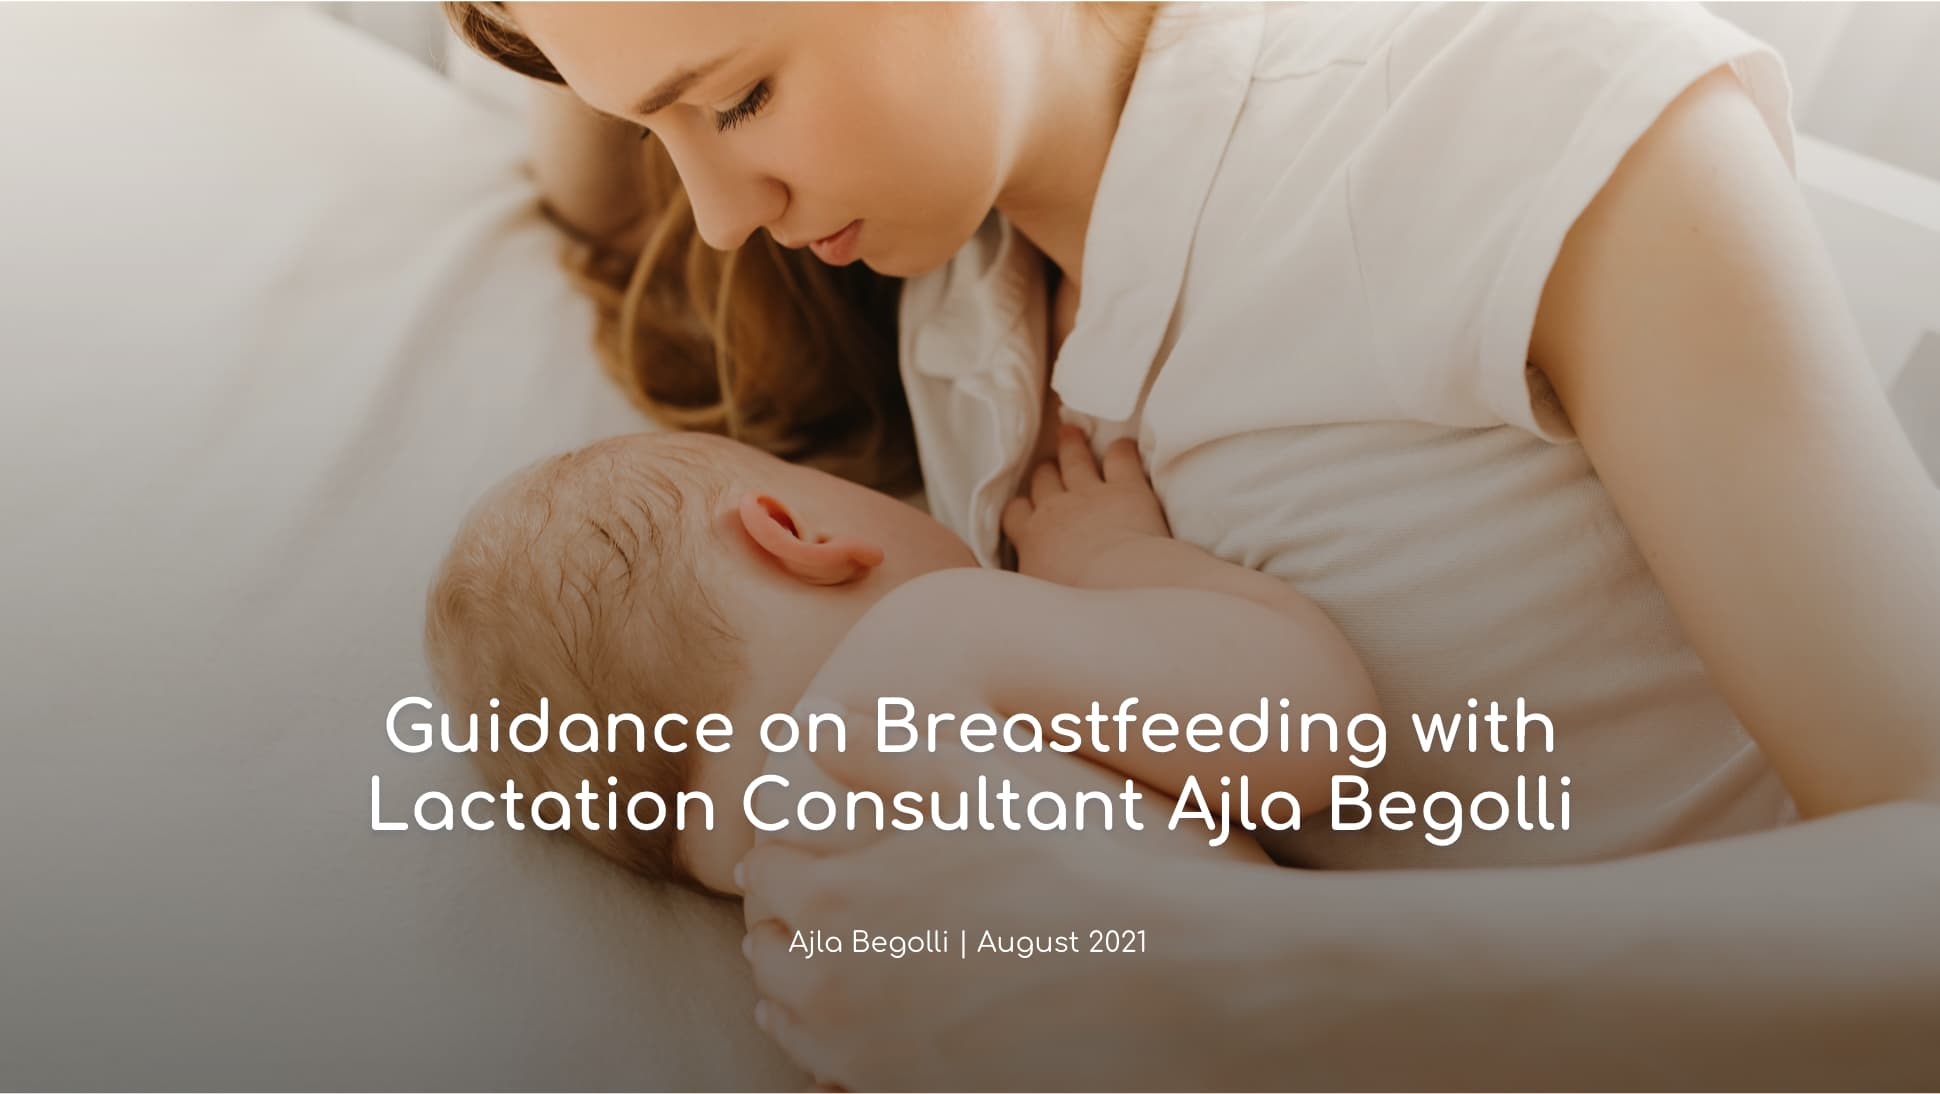 Expert advice from Lactation Consultant Ajla Begolli